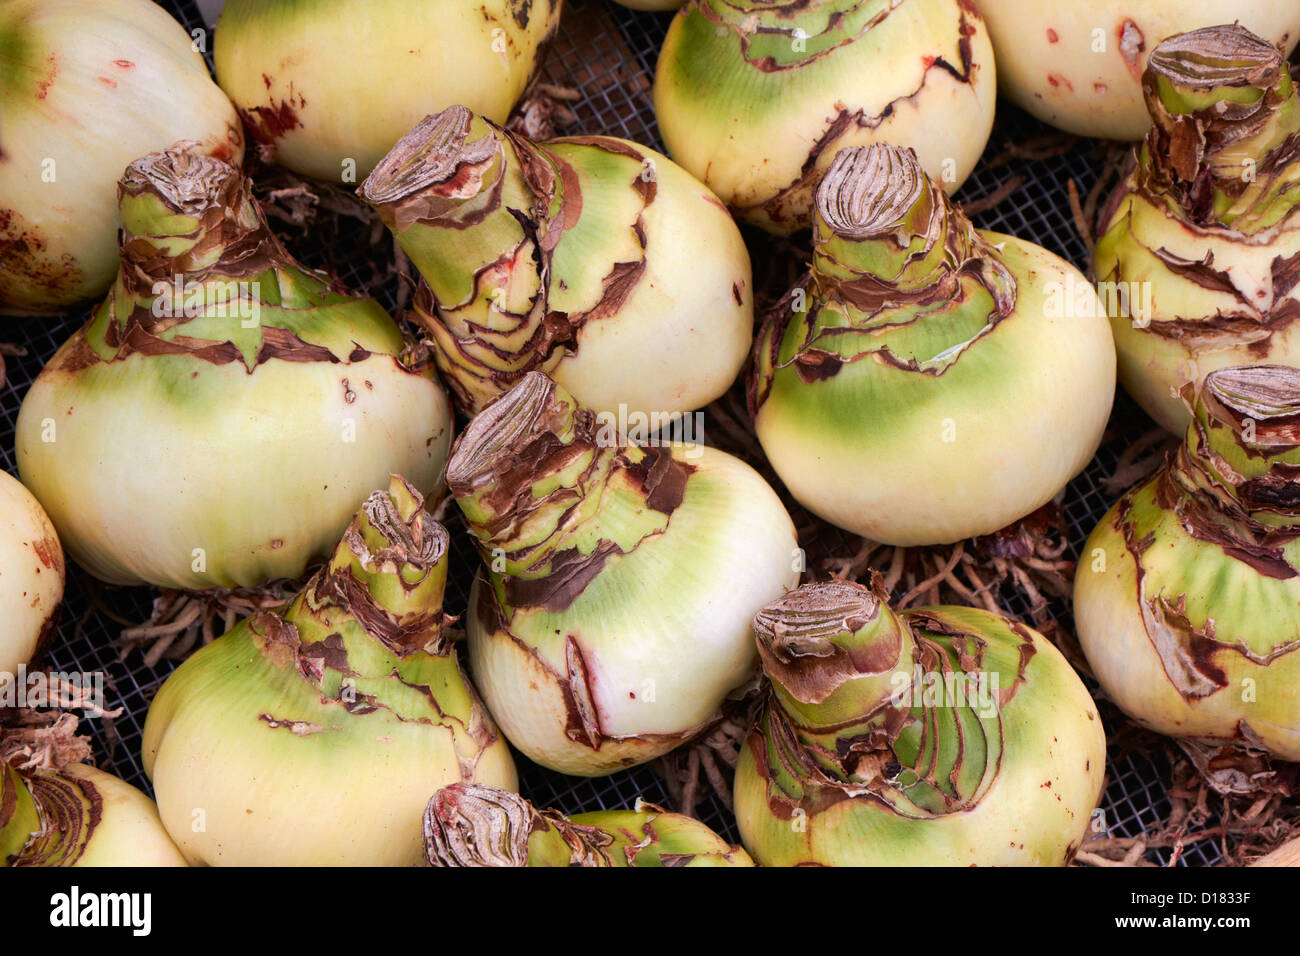 Holland amsterdam flowers market belladonna lily bulbs amaryllis holland amsterdam flowers market belladonna lily bulbs amaryllis for sale izmirmasajfo Image collections